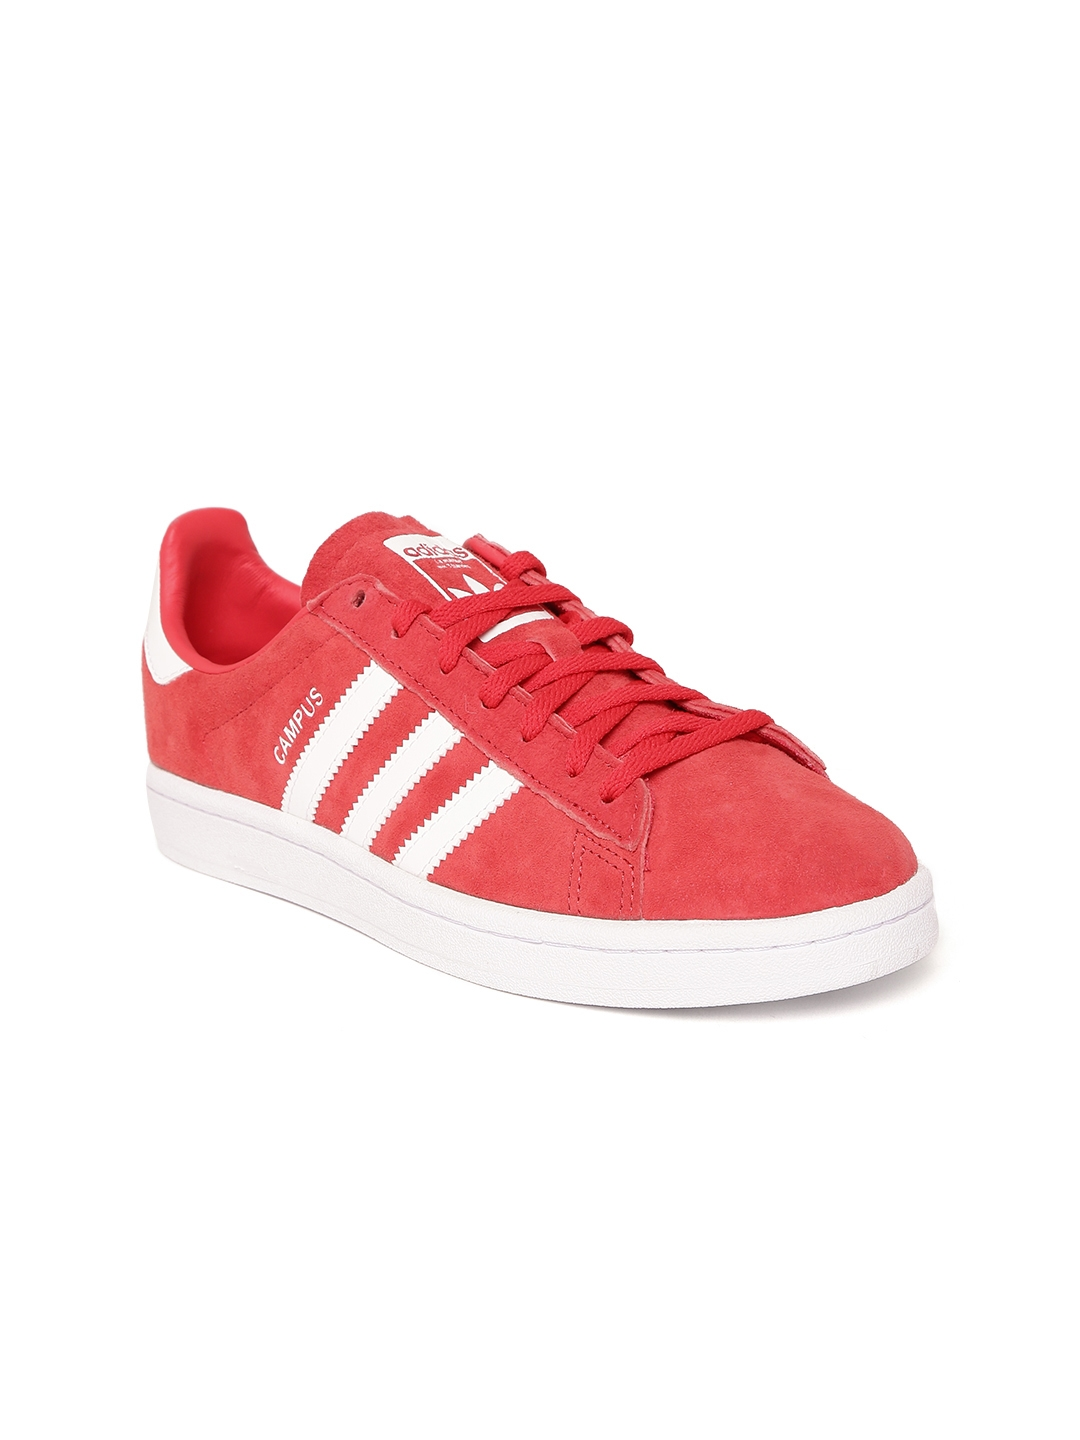 adidas red for women